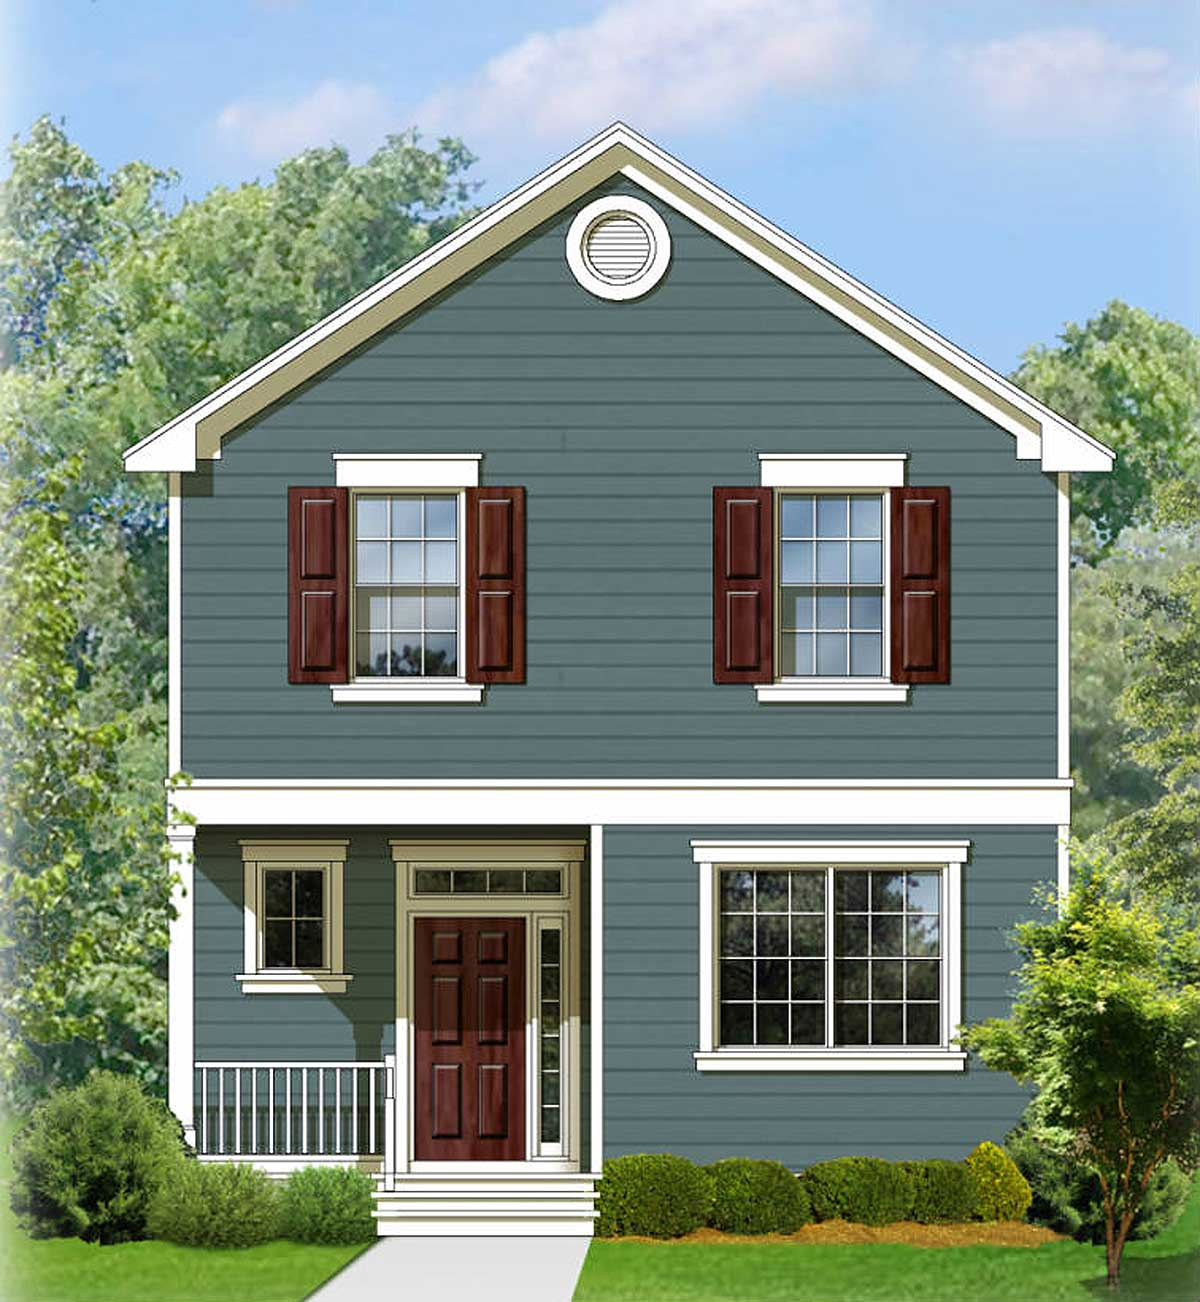 Two story traditional house plan 82083ka 2nd floor for American house plans designs